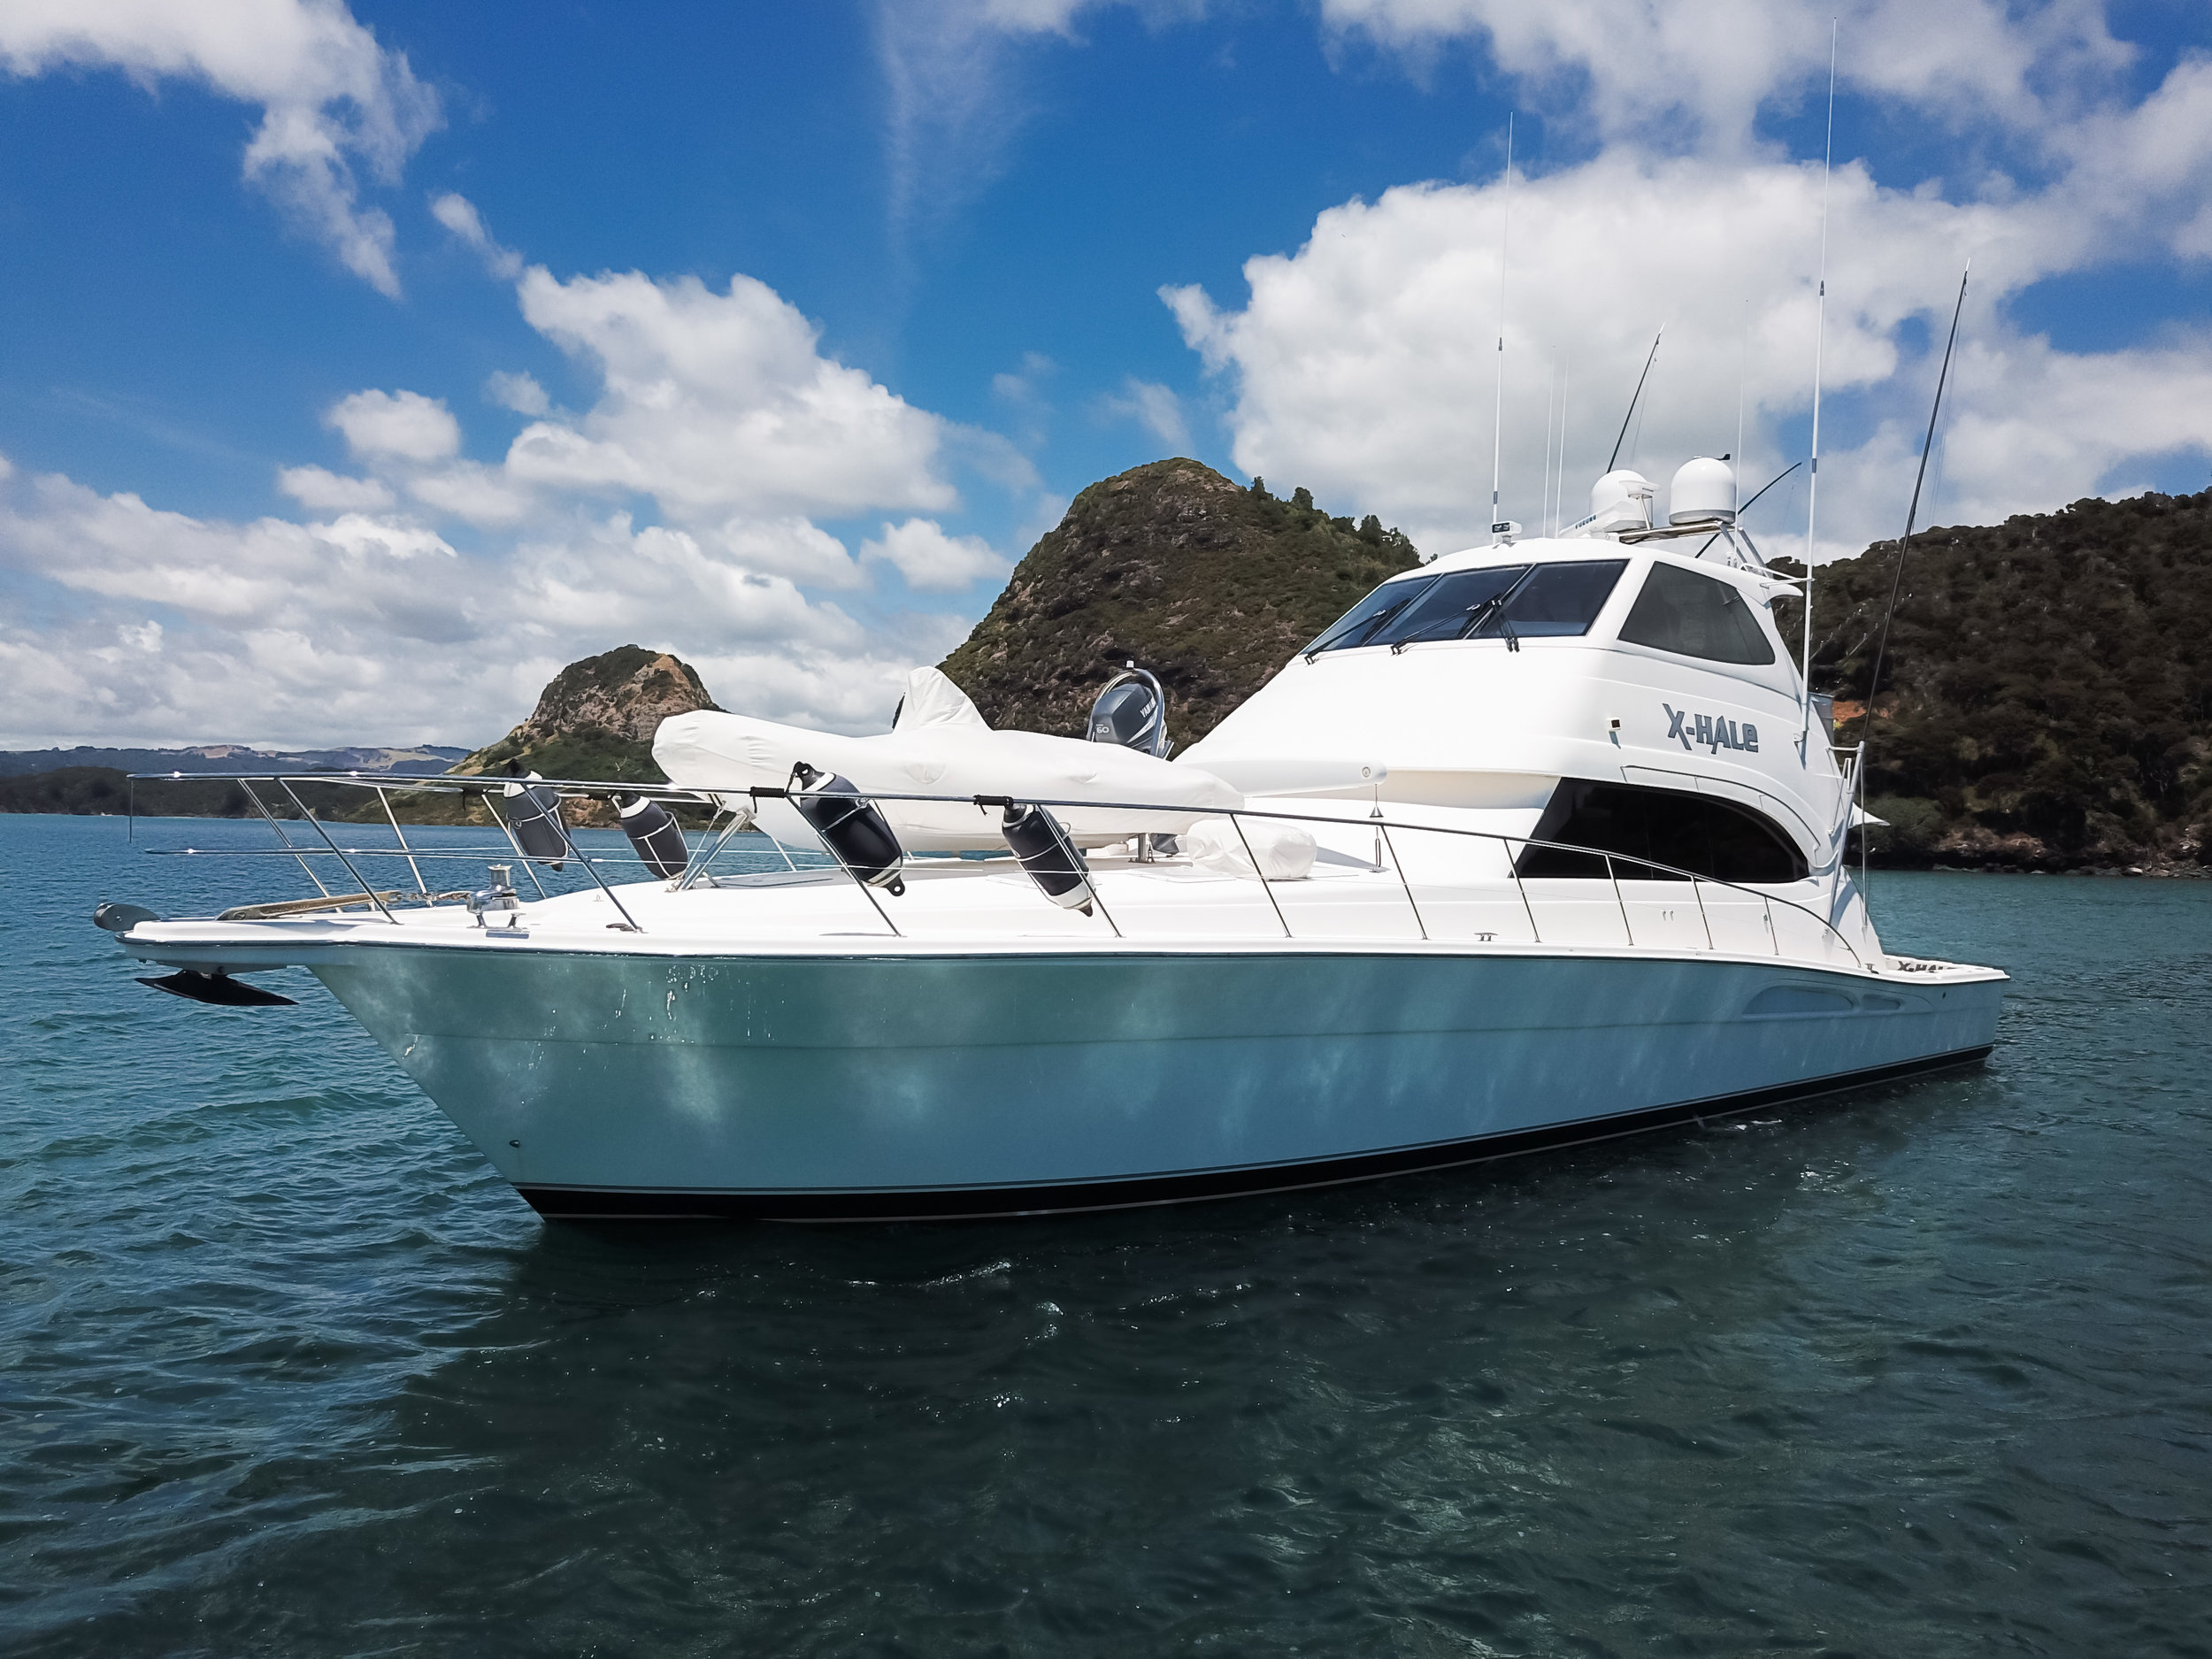 Riviera 58 Boat for sale Auckland .jpg